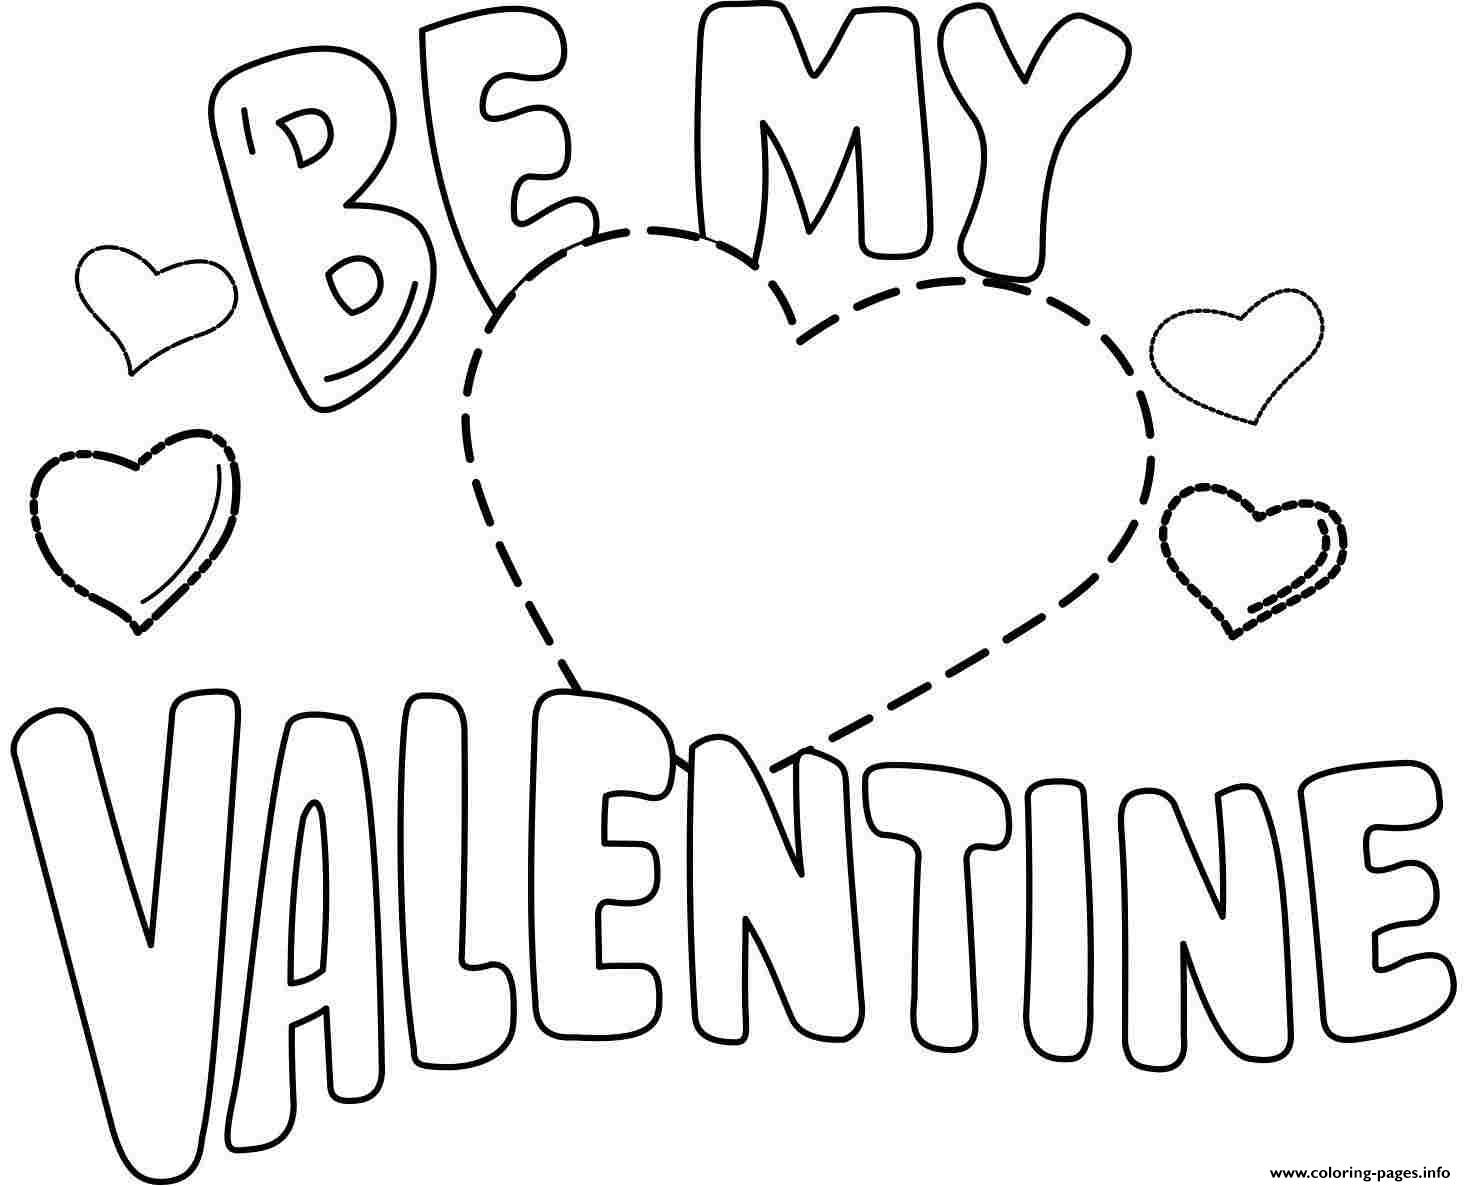 be my valentine valentines day coloring pages - Valentines Day Coloring Pages